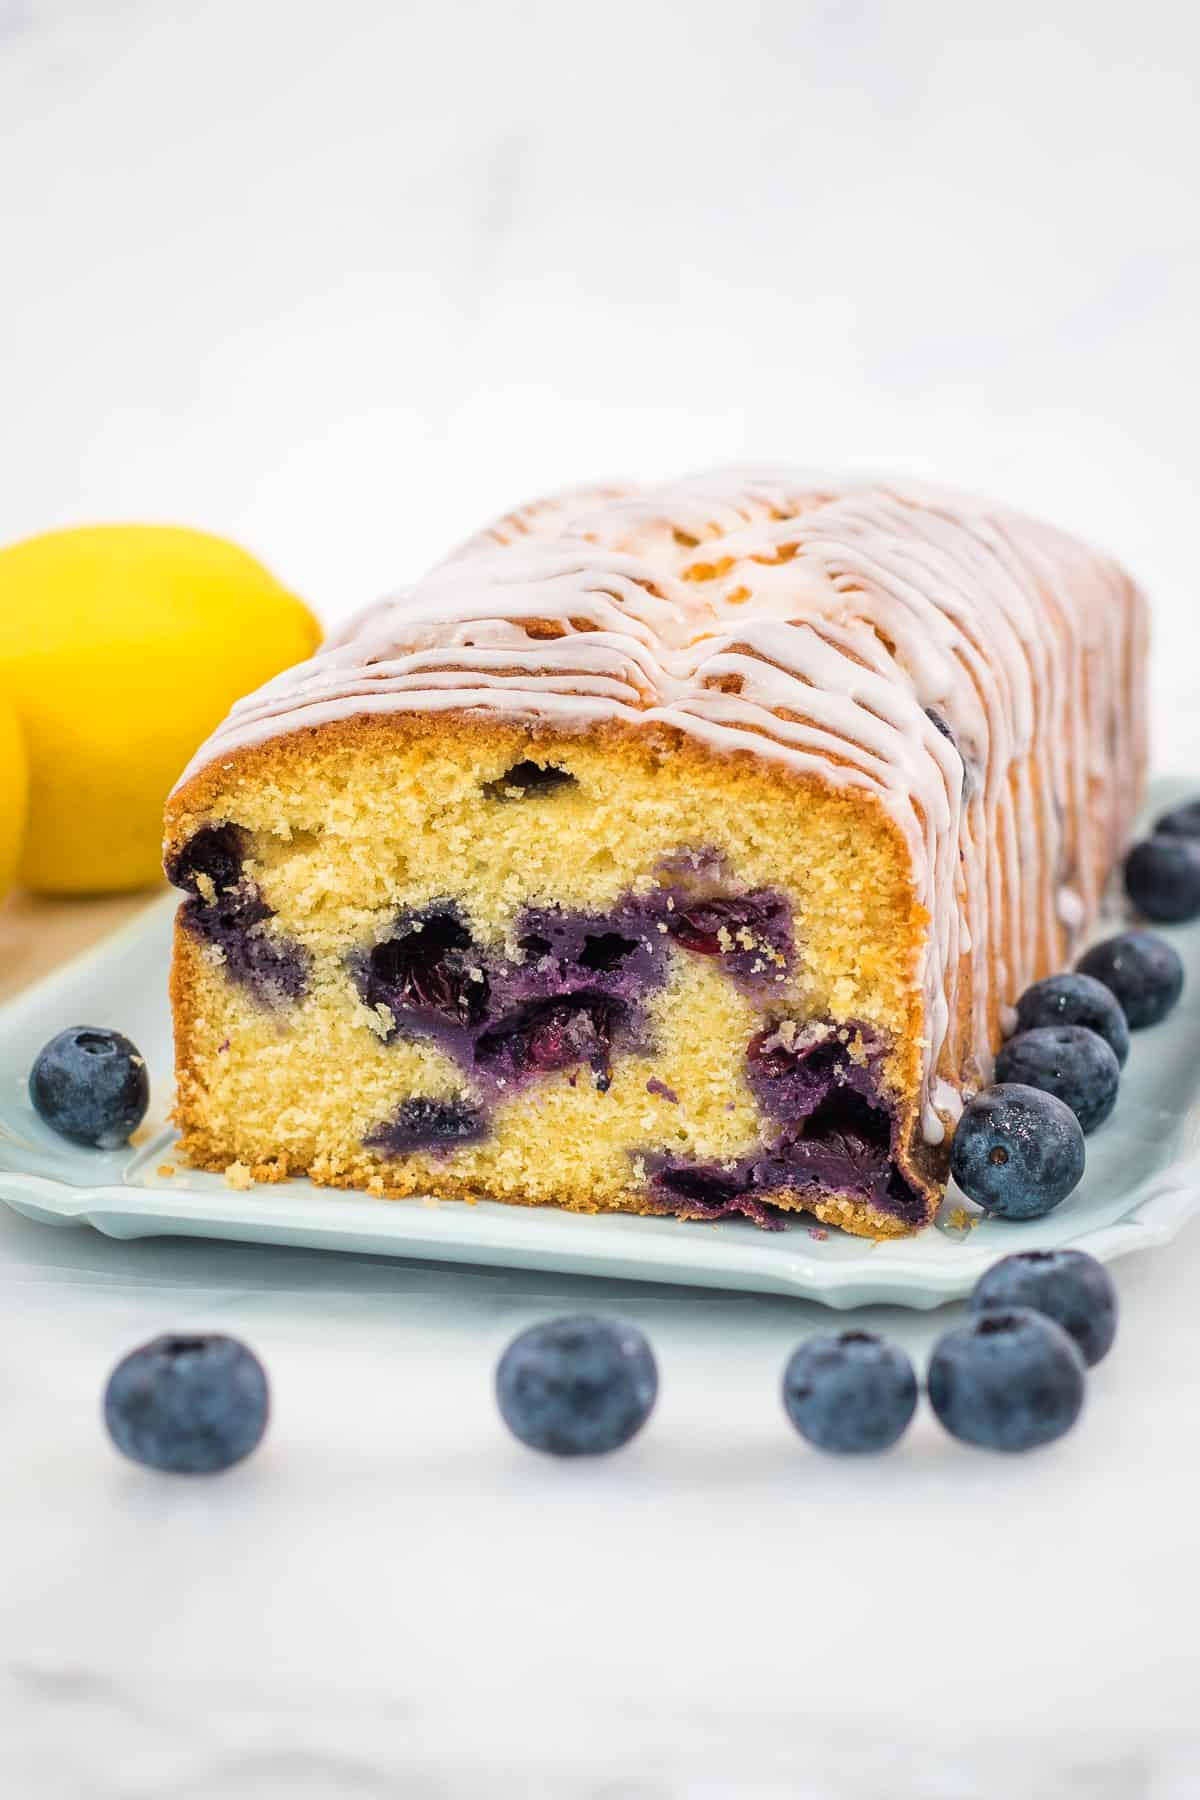 The front view of a blueberry cake loaf that can be sliced.